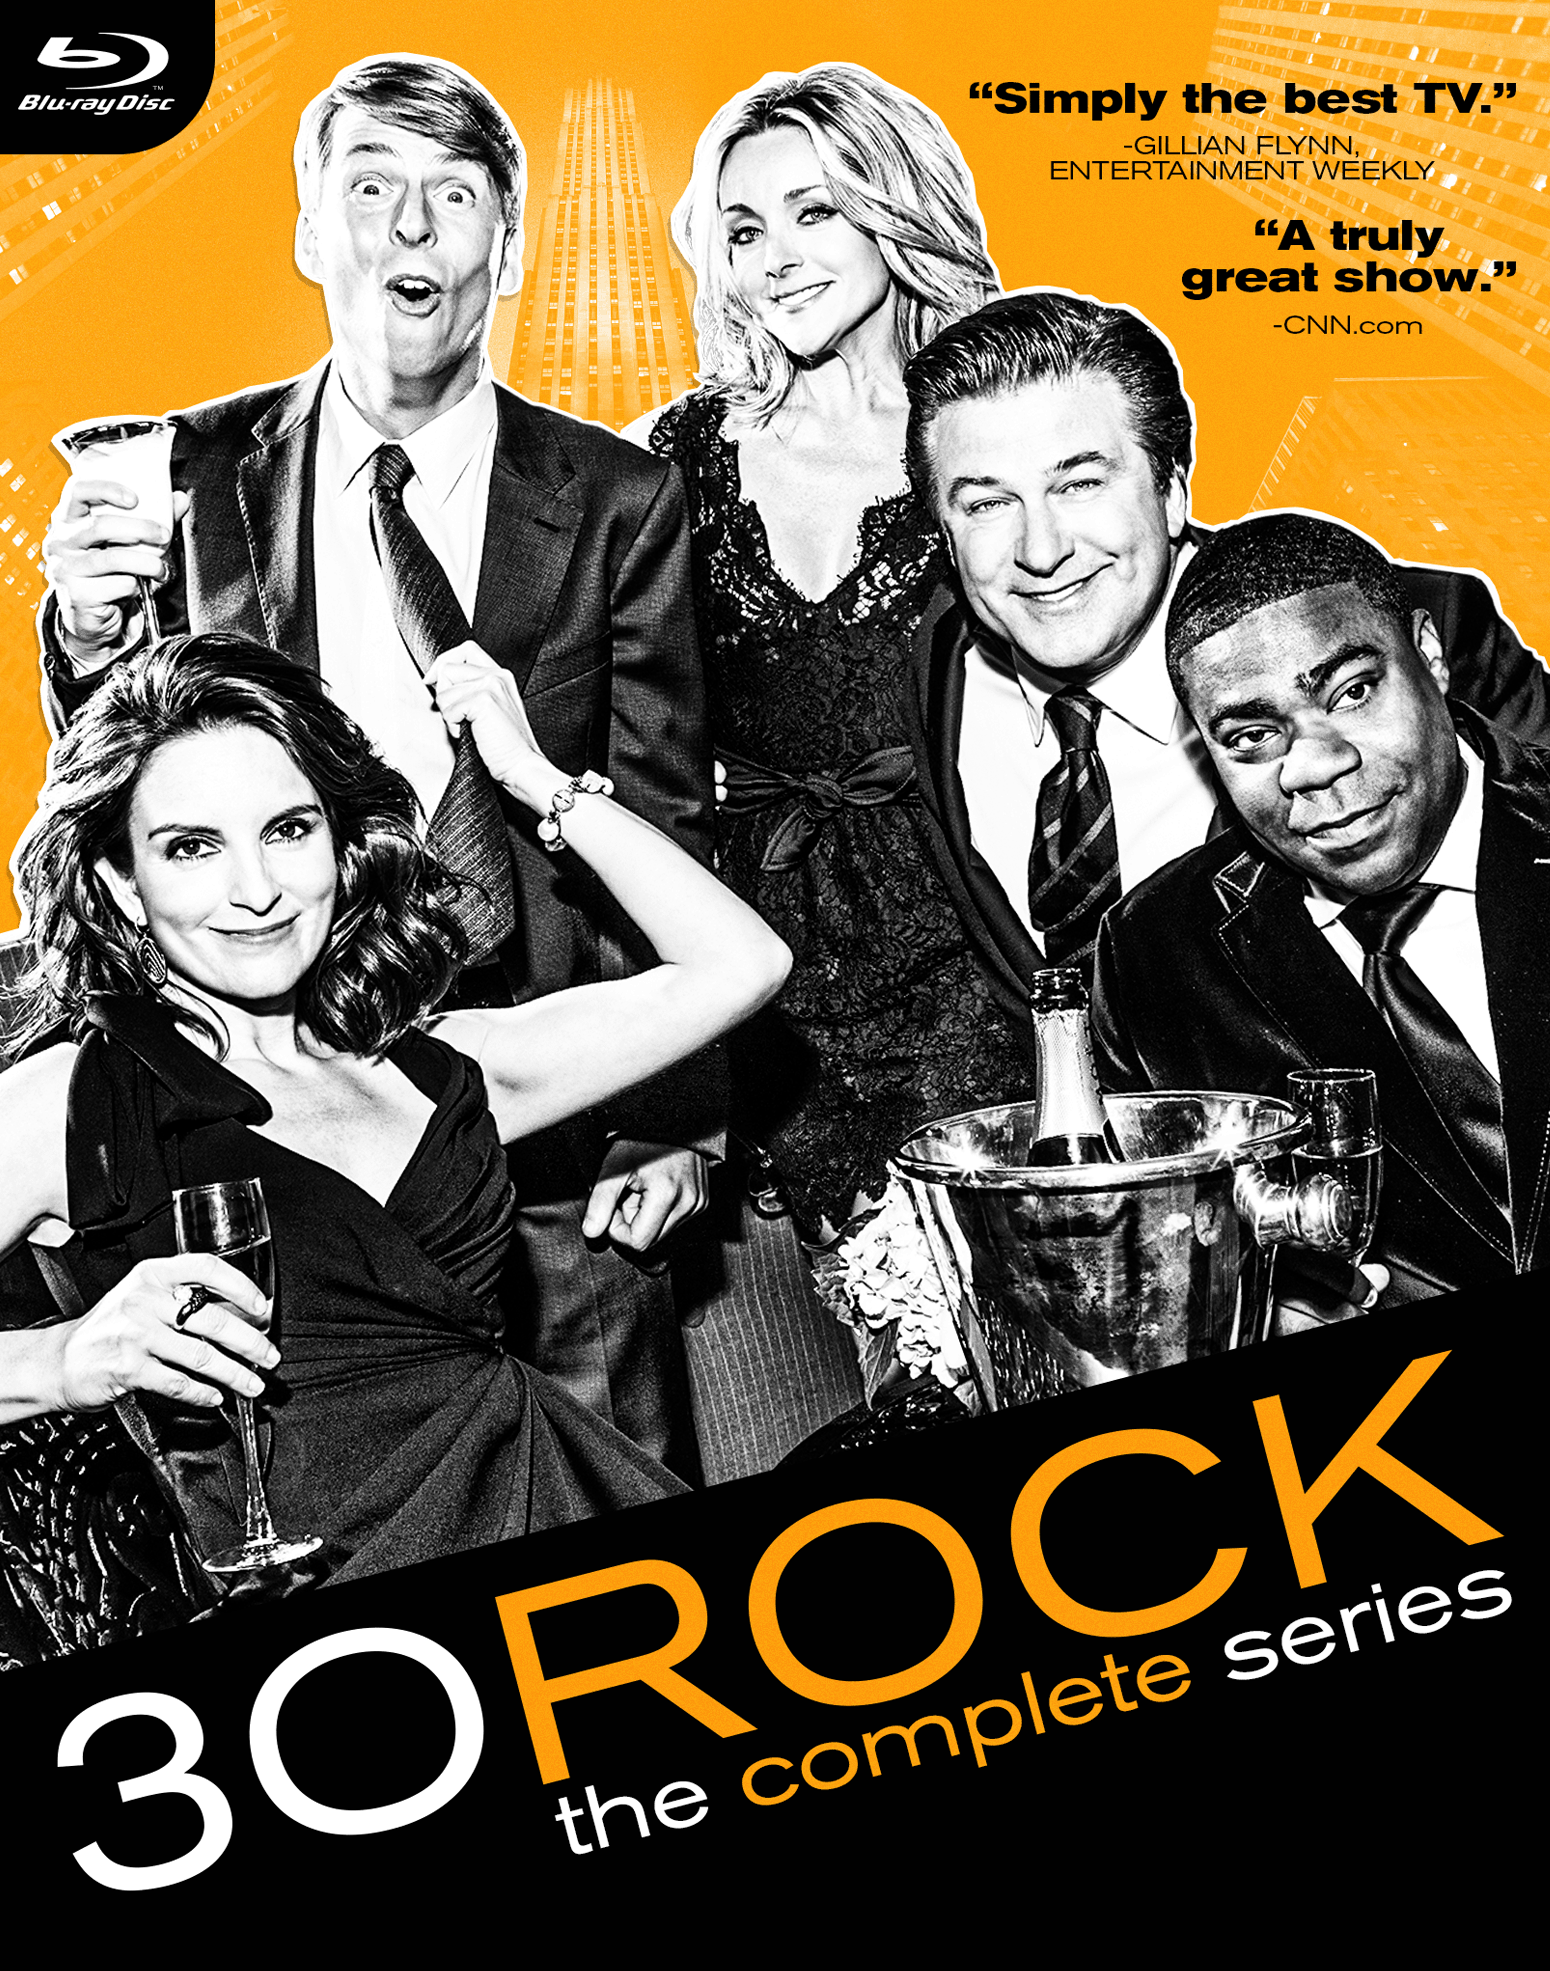 30 Rock The Complete Series blu-ray